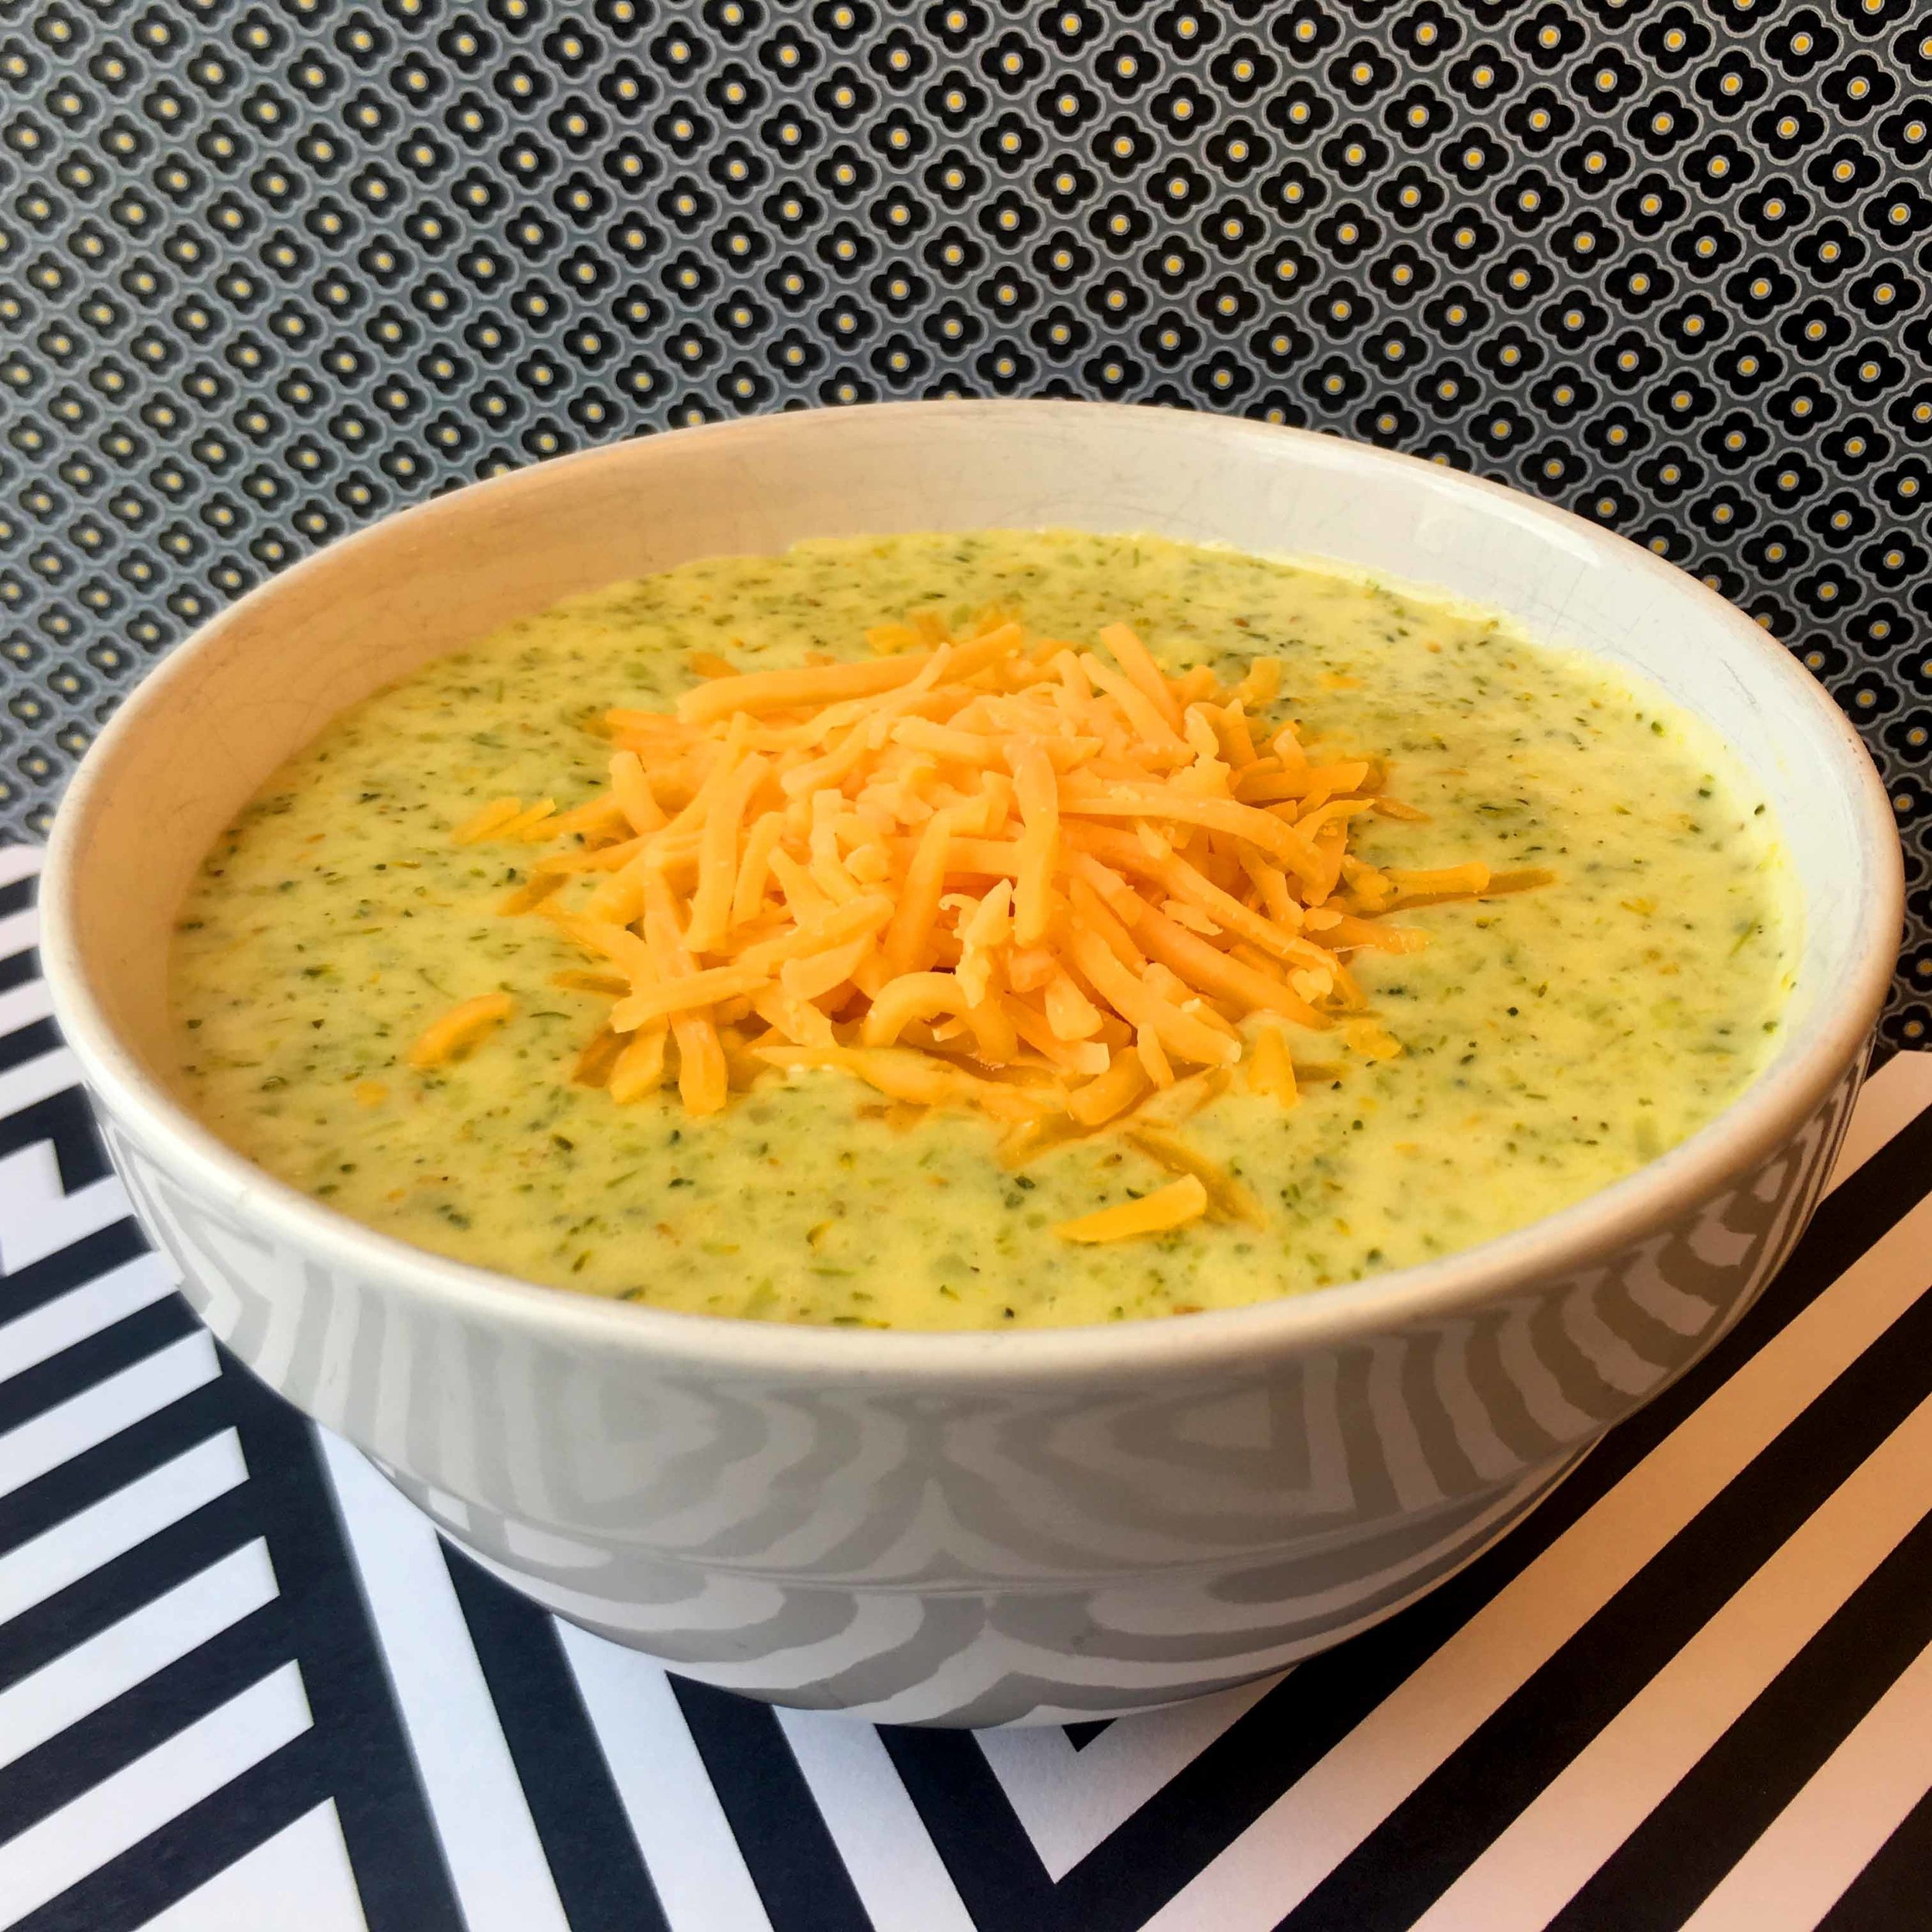 Low Carb Keto Broccoli Cheese Soup Recipe